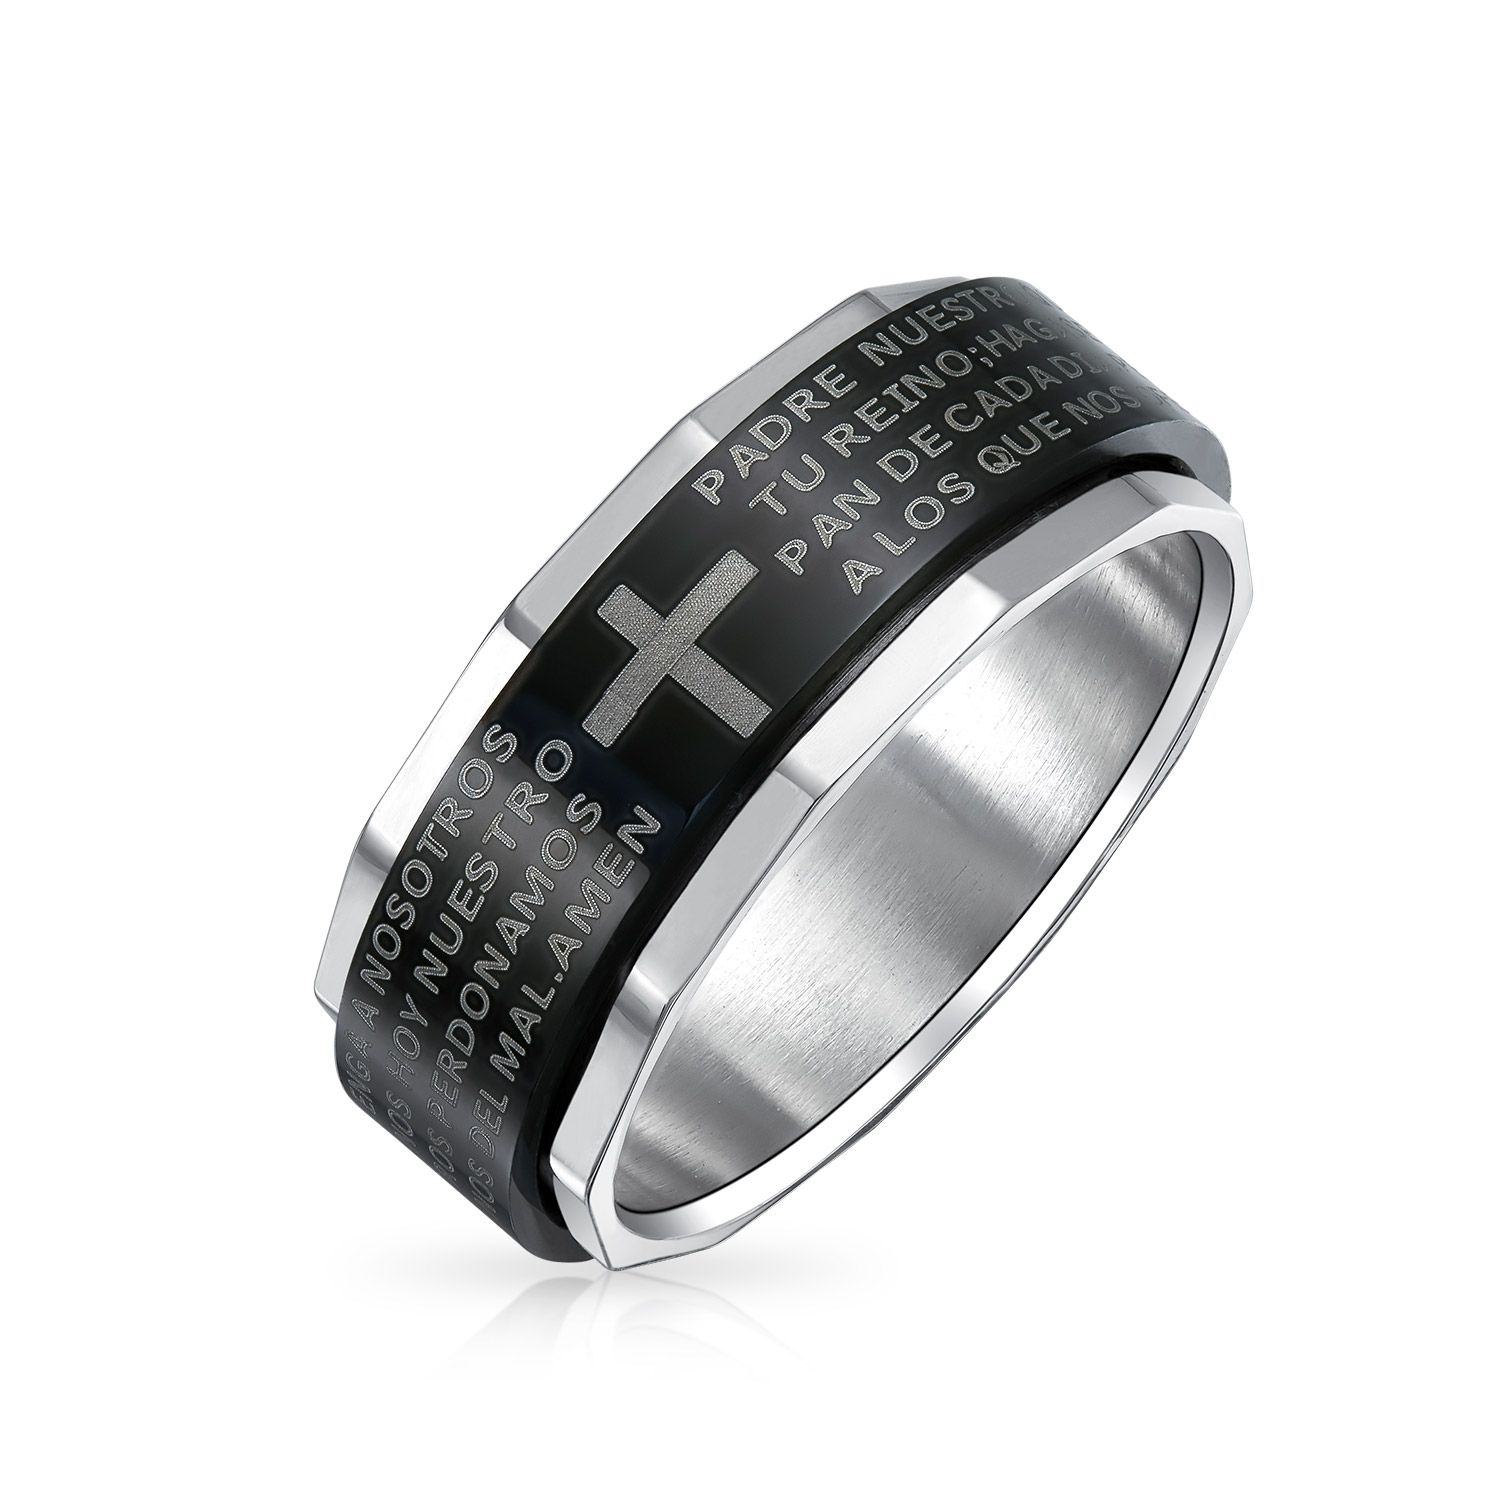 Religious Padre Nuestro Lords Pray Cross Black Spinner Band Ring For Men For Women Silver Tone Edge Stainless Steel - Silver, 13 Our black stainless steel spinner ring blends elegance and contemporary fashion beautifully. It is a perfect gift for yourself or for that special person in your life who wears religious jewelry. Our lightweight padre nuestro ring features the comforting words of the Lords prayer in Spanish. The black inner band with the words of the Lords prayer etched on it spins eas